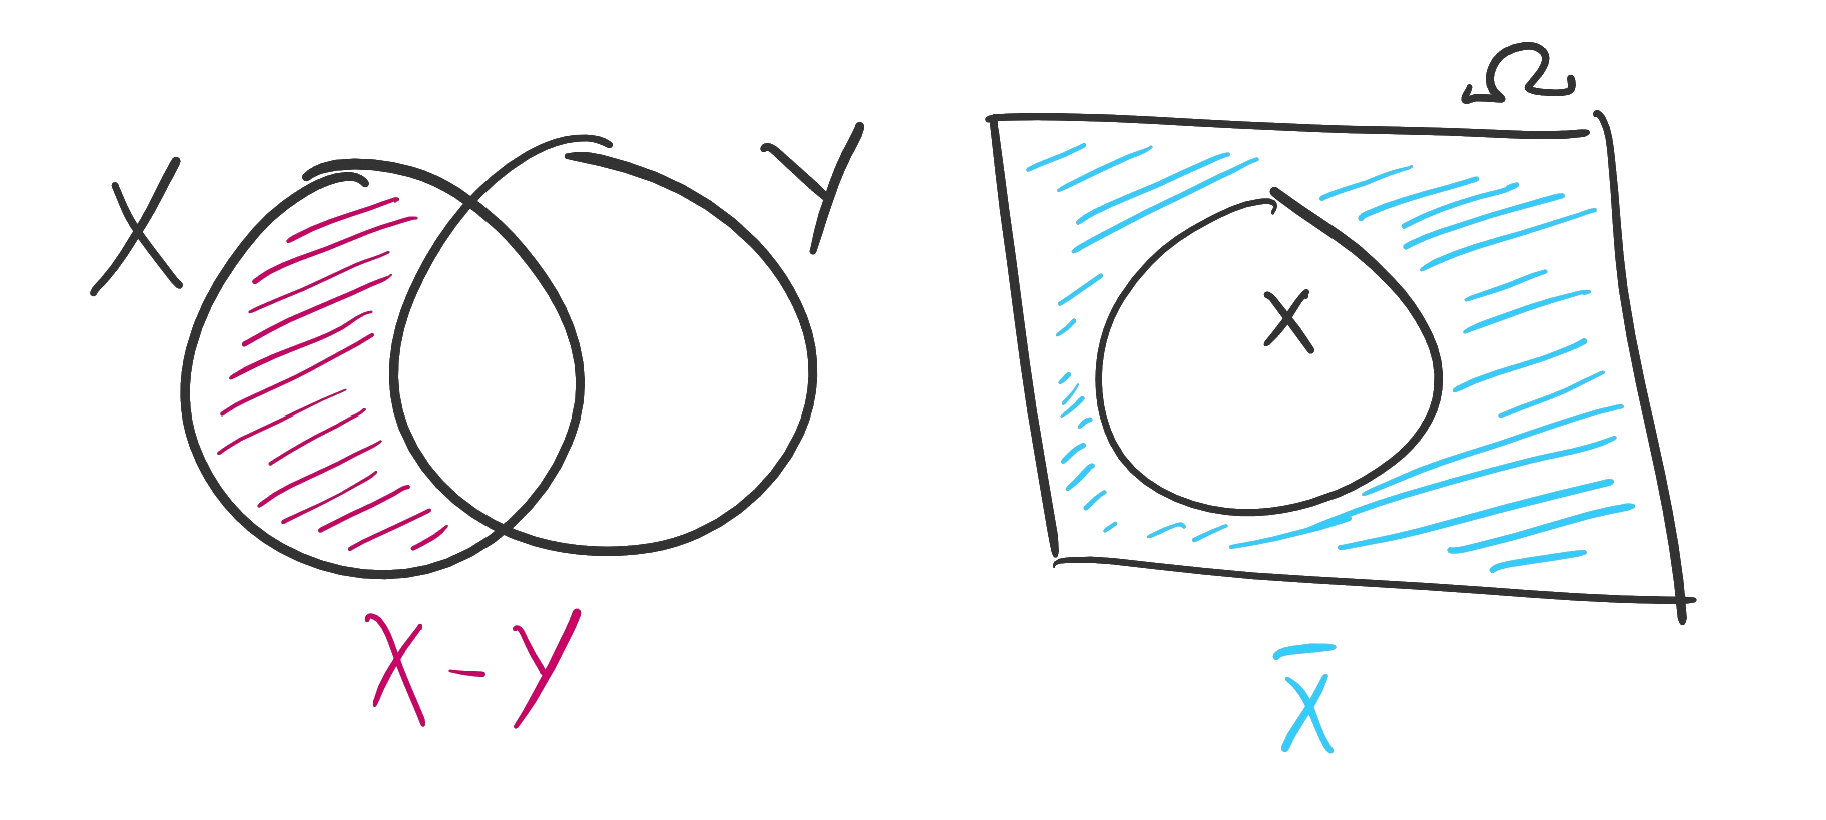 On the left, two sets X and Y are pictured as overlapping circles. The region within X, excluding the portion that is also part of Y, is shaded in pink. This is a picture of the difference X minus Y. On the right, a set X, pictured as a circle, is shown contained in its universal set, pictured as a rectangle. The region between the rectangle and circle is shaded in blue, representing the complement of X.